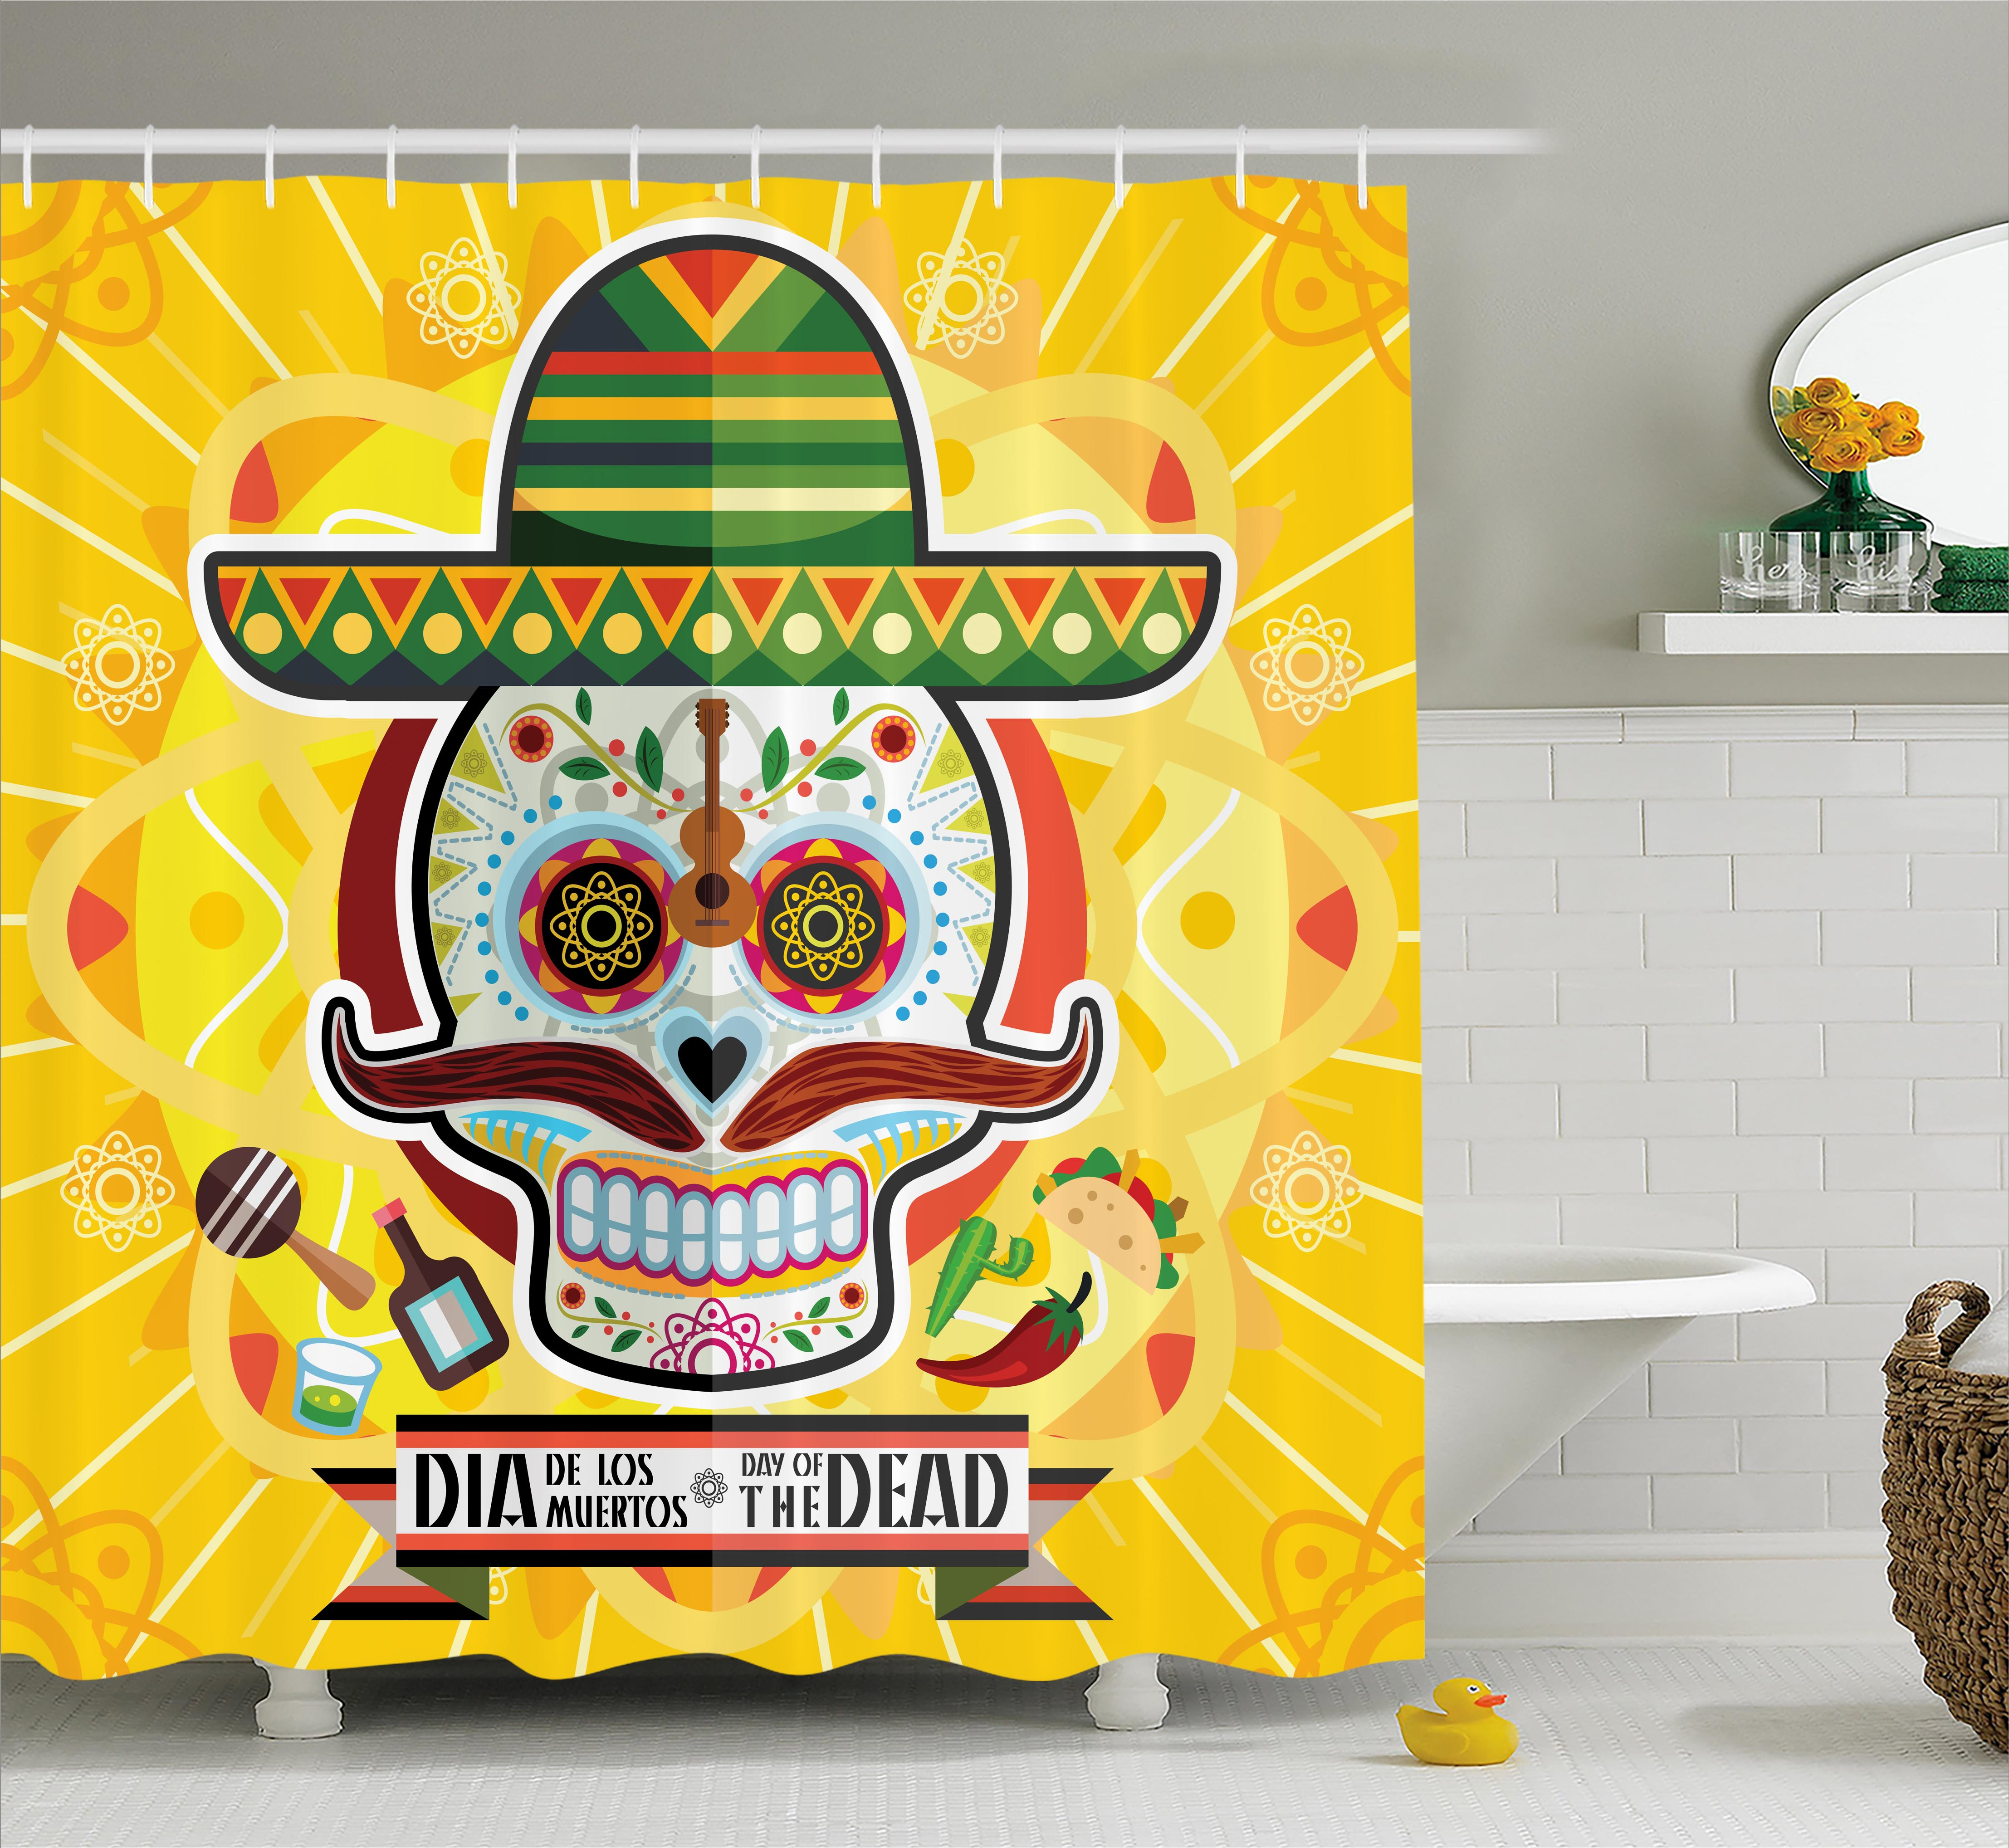 Day Of The Dead Shower Curtain, Mexican Sugar Skull With Tacos And Chili  Pepper November 2nd ...